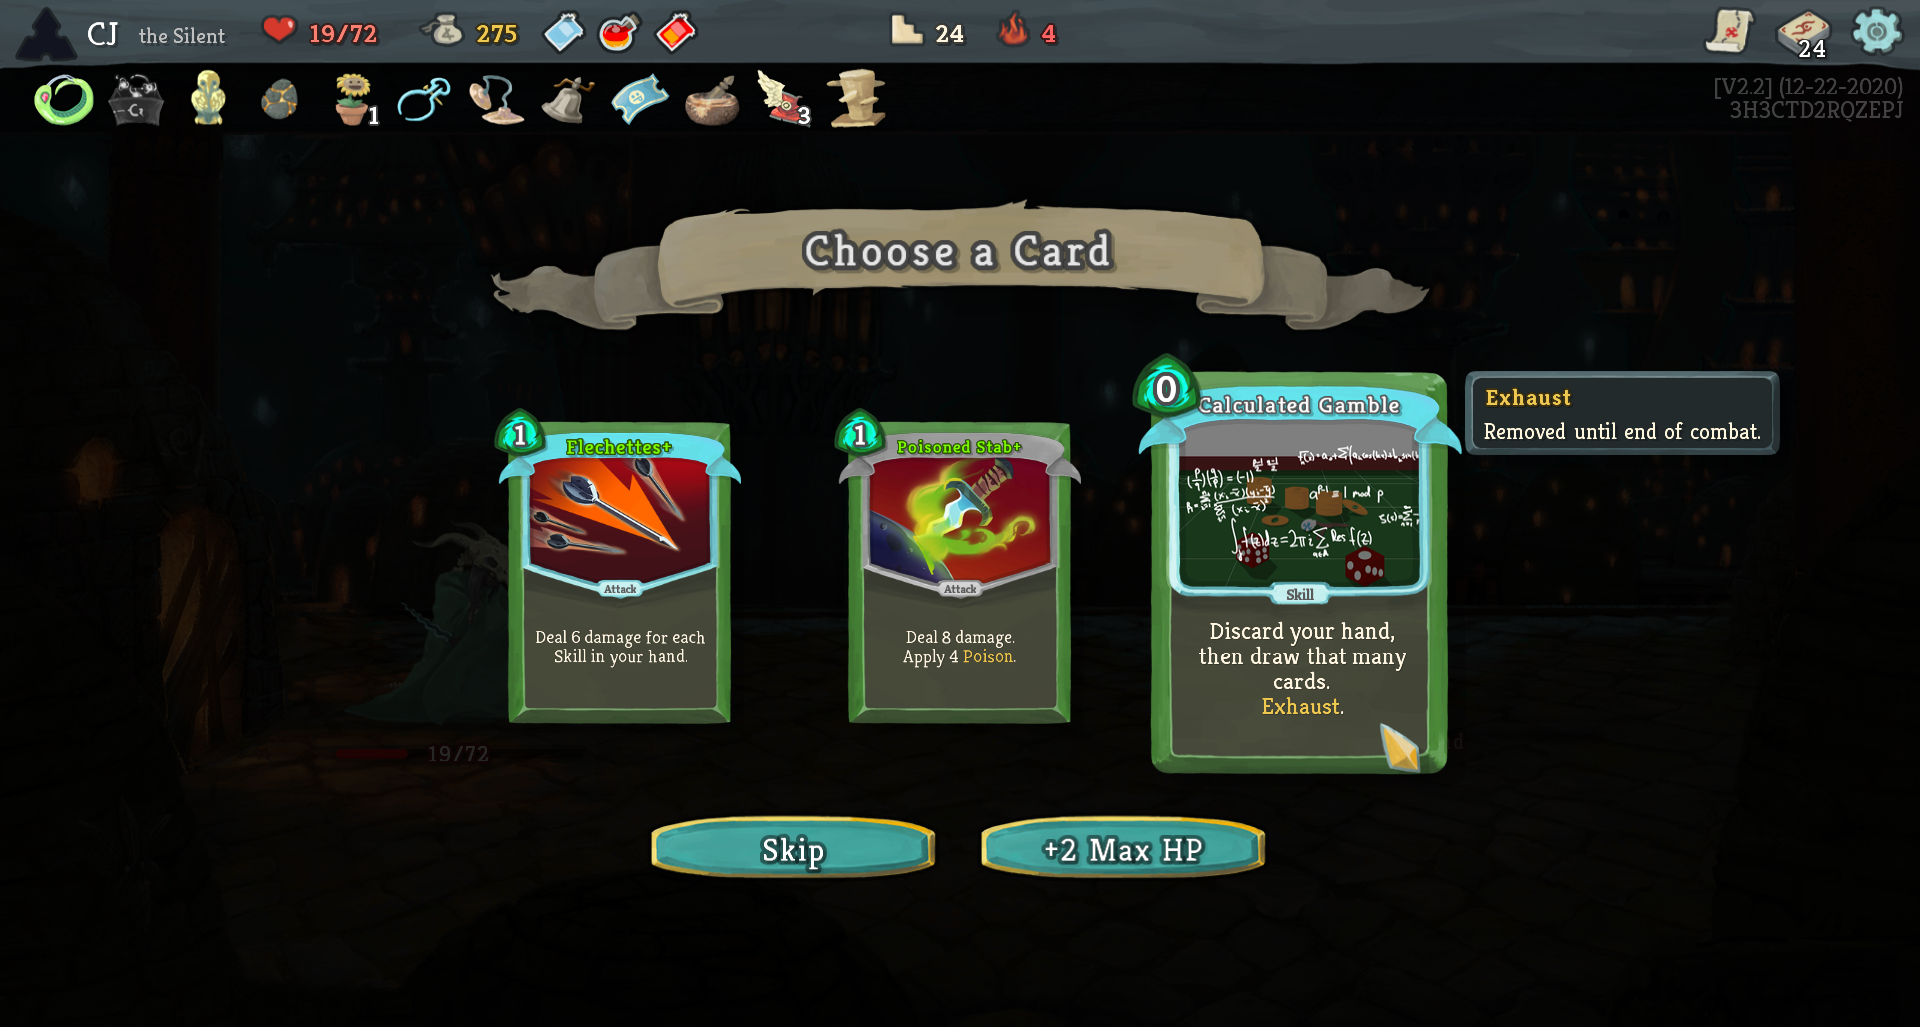 card reward screen, highlighted card is calculated gamble (discard your hand and draw one card for each card discarded)